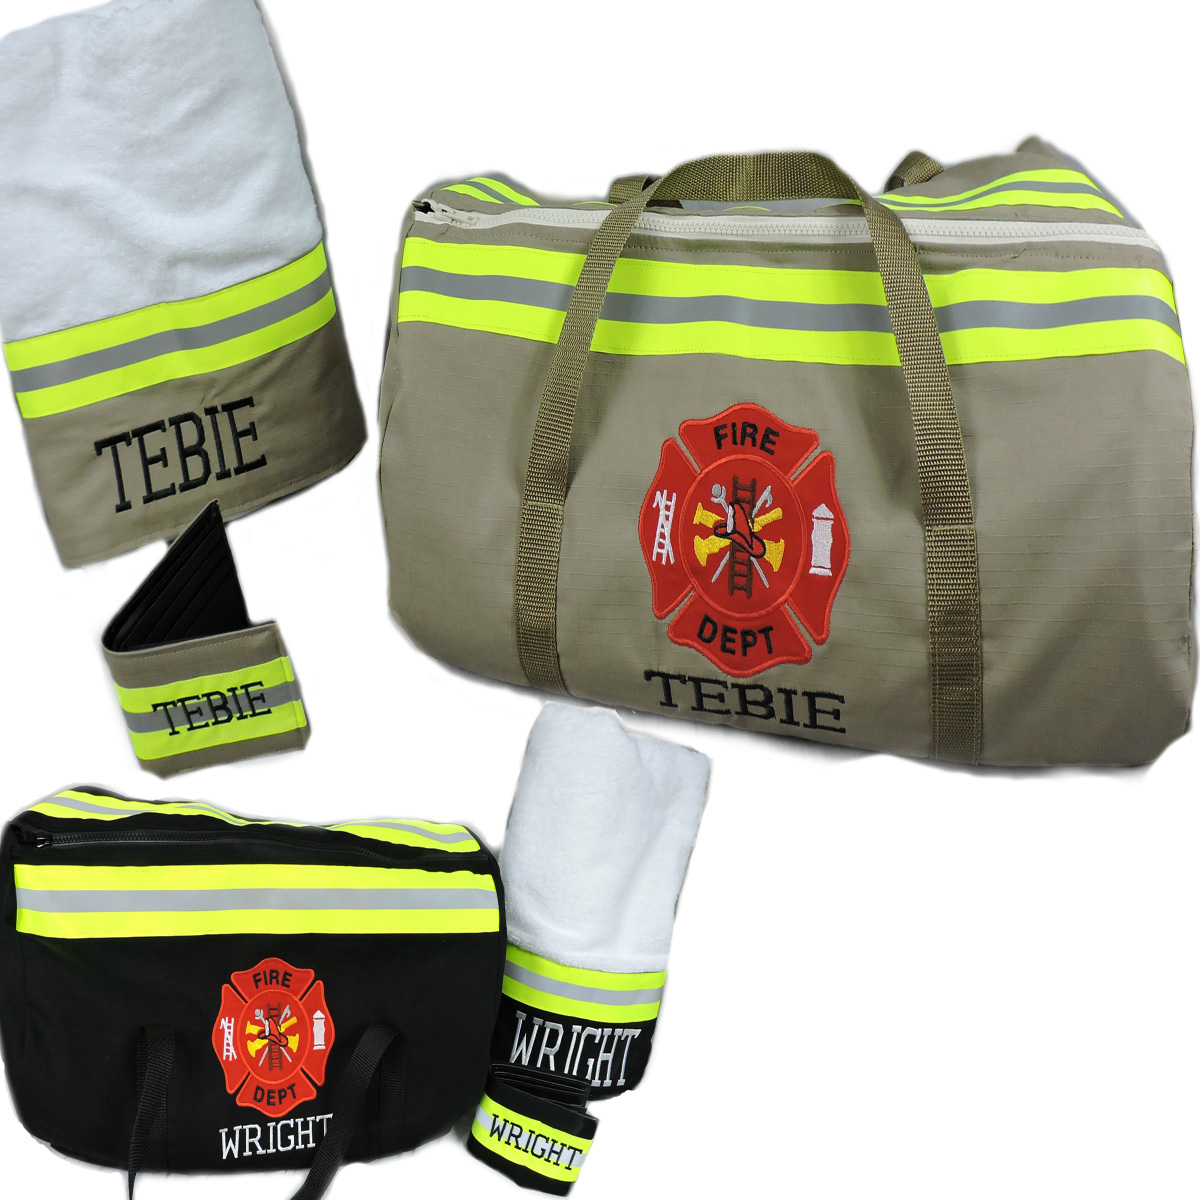 Firefighter-gift-set-duffel-bag-bath-towel-wallet